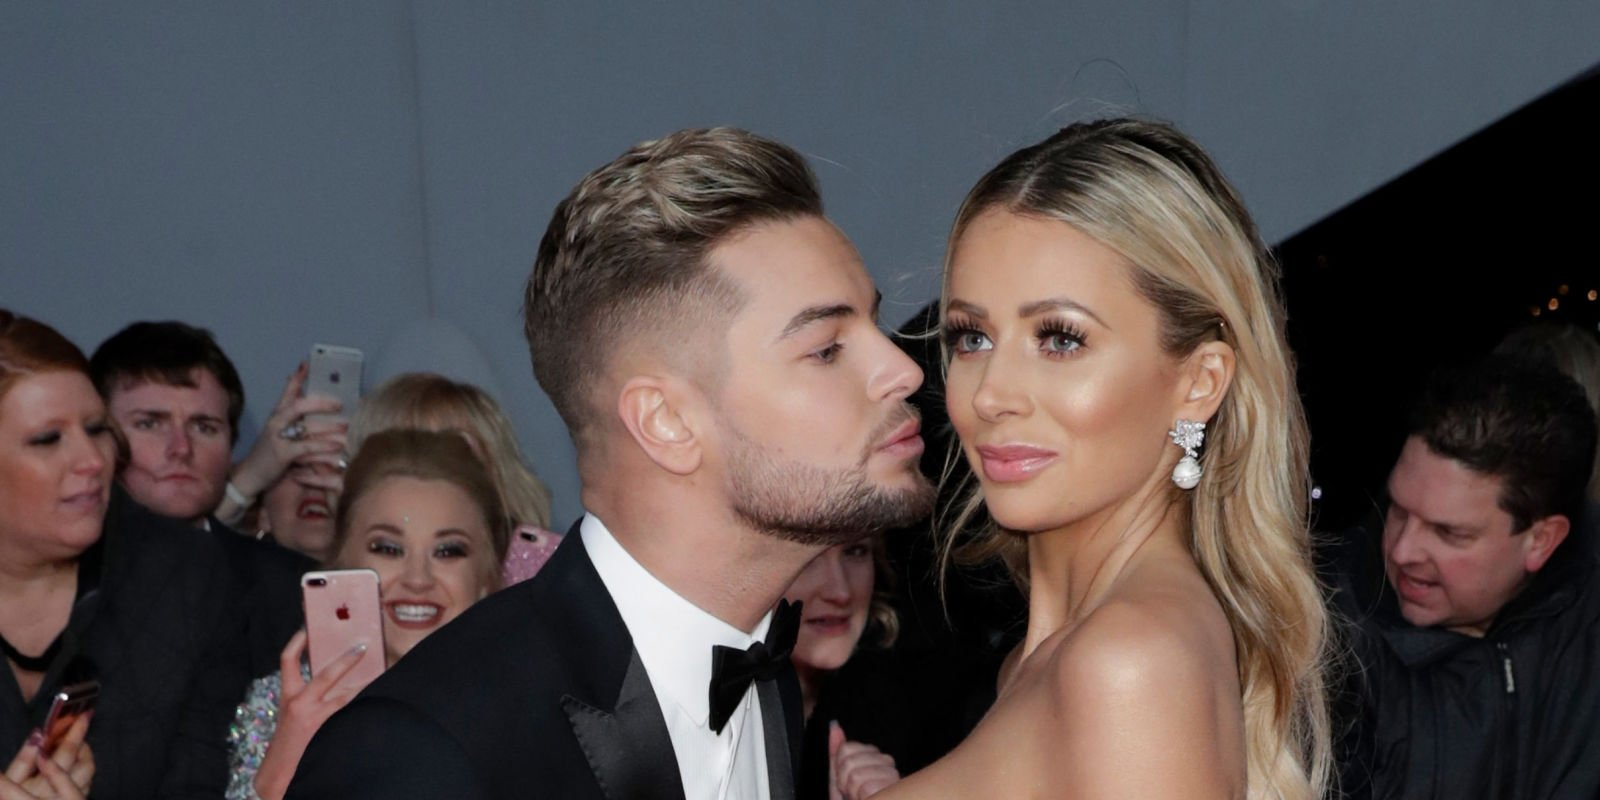 Love Island's Olivia Attwood opens up about ex Chris Hughes after split